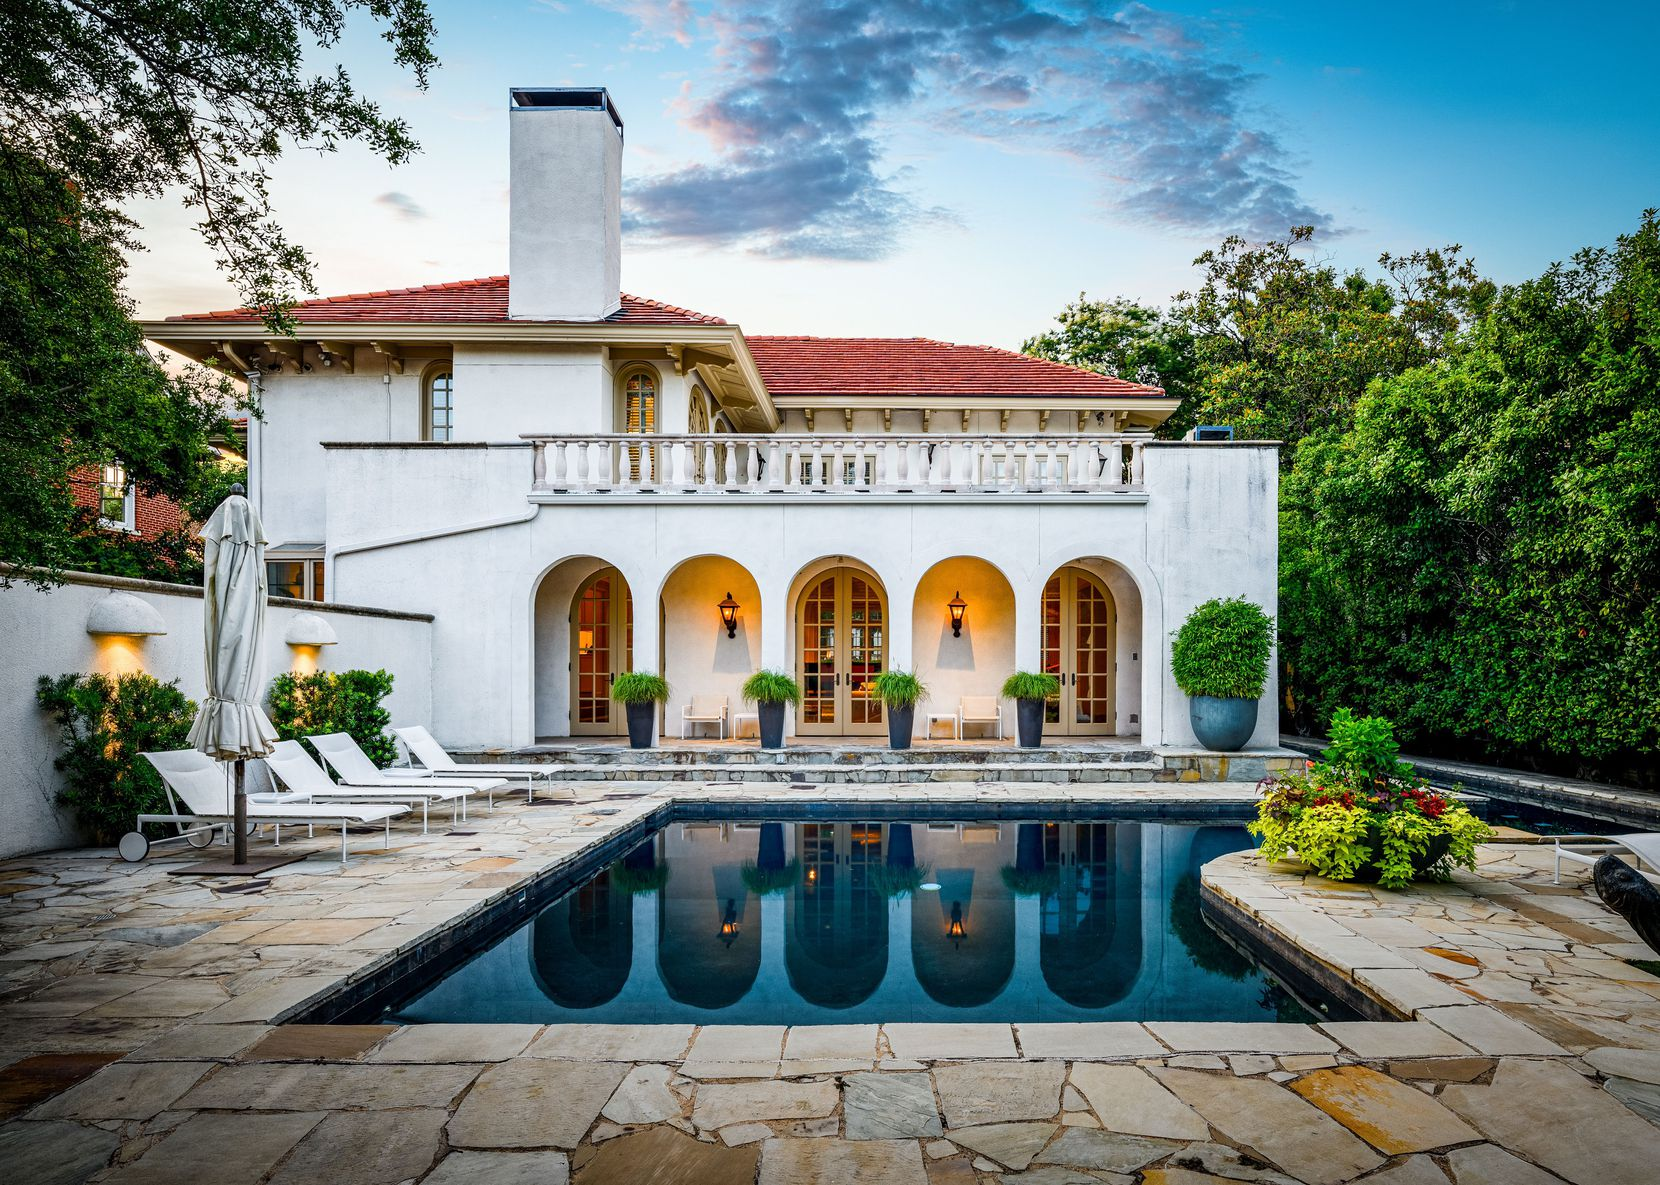 Feast Your Eyes On A Beautifully Preserved 1920s Spanish Style Home In Highland Park